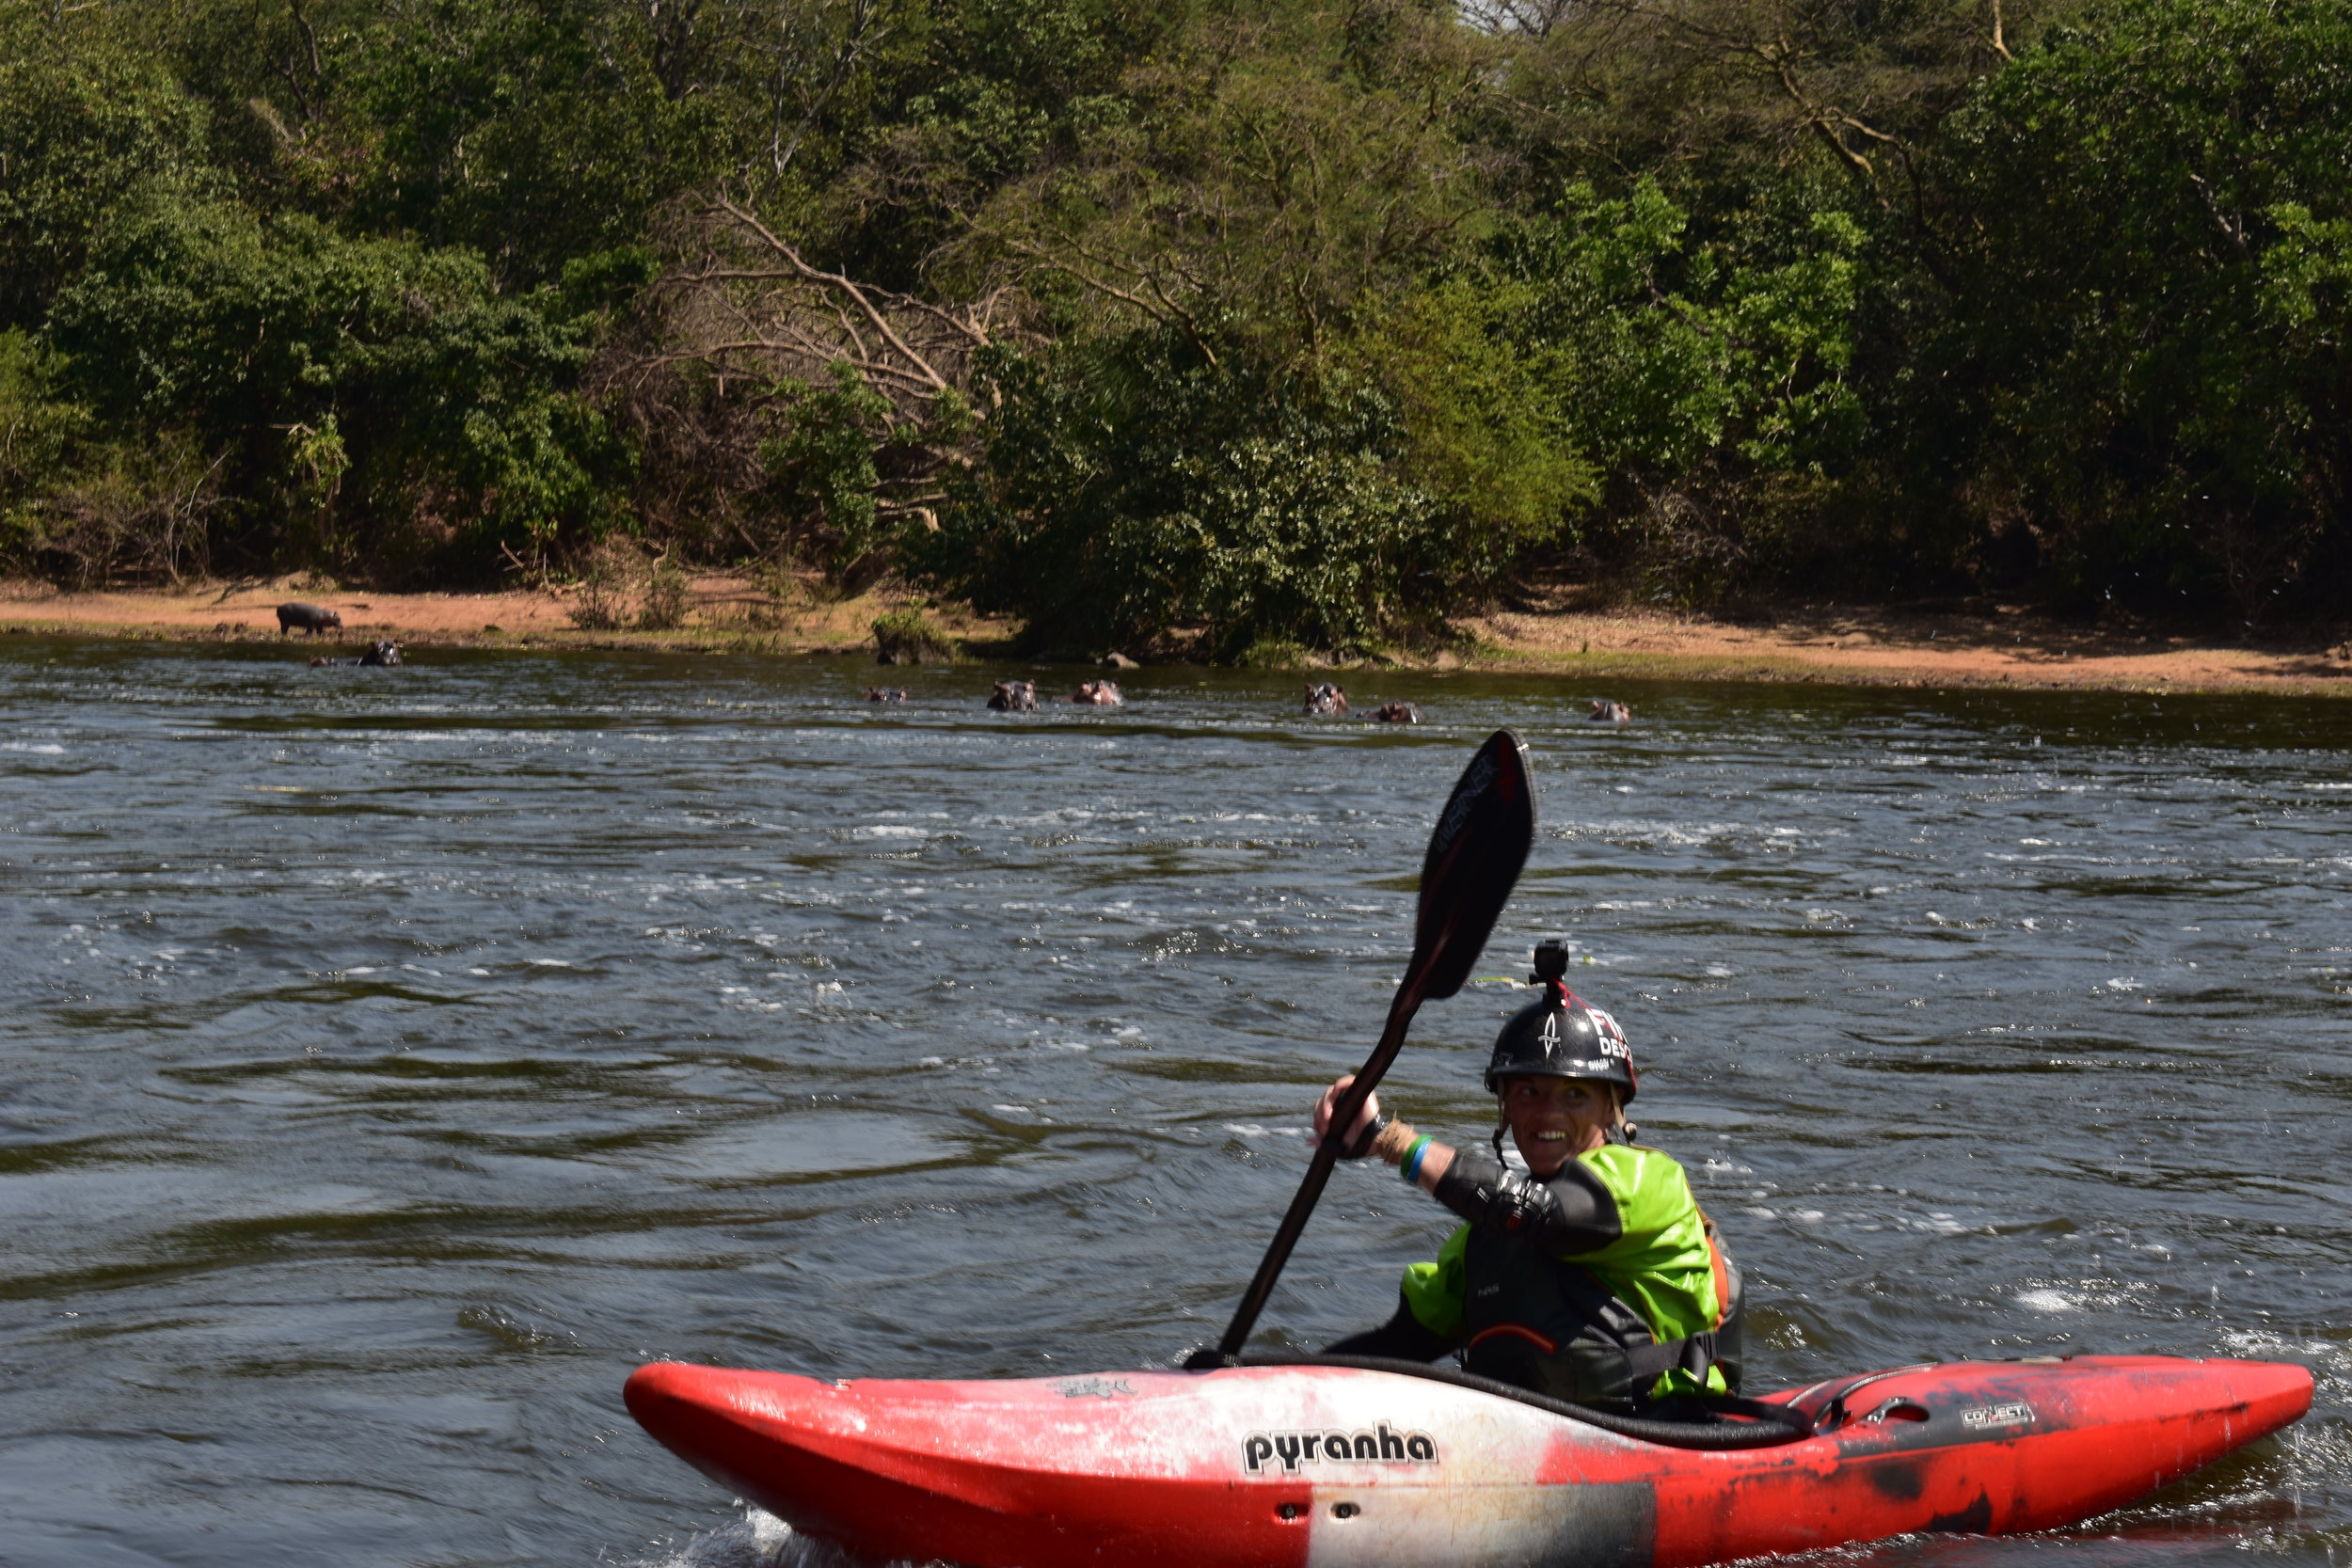 Just paddling through flatwater while being watched by some very large mammals. Photo by: Bob Frederick